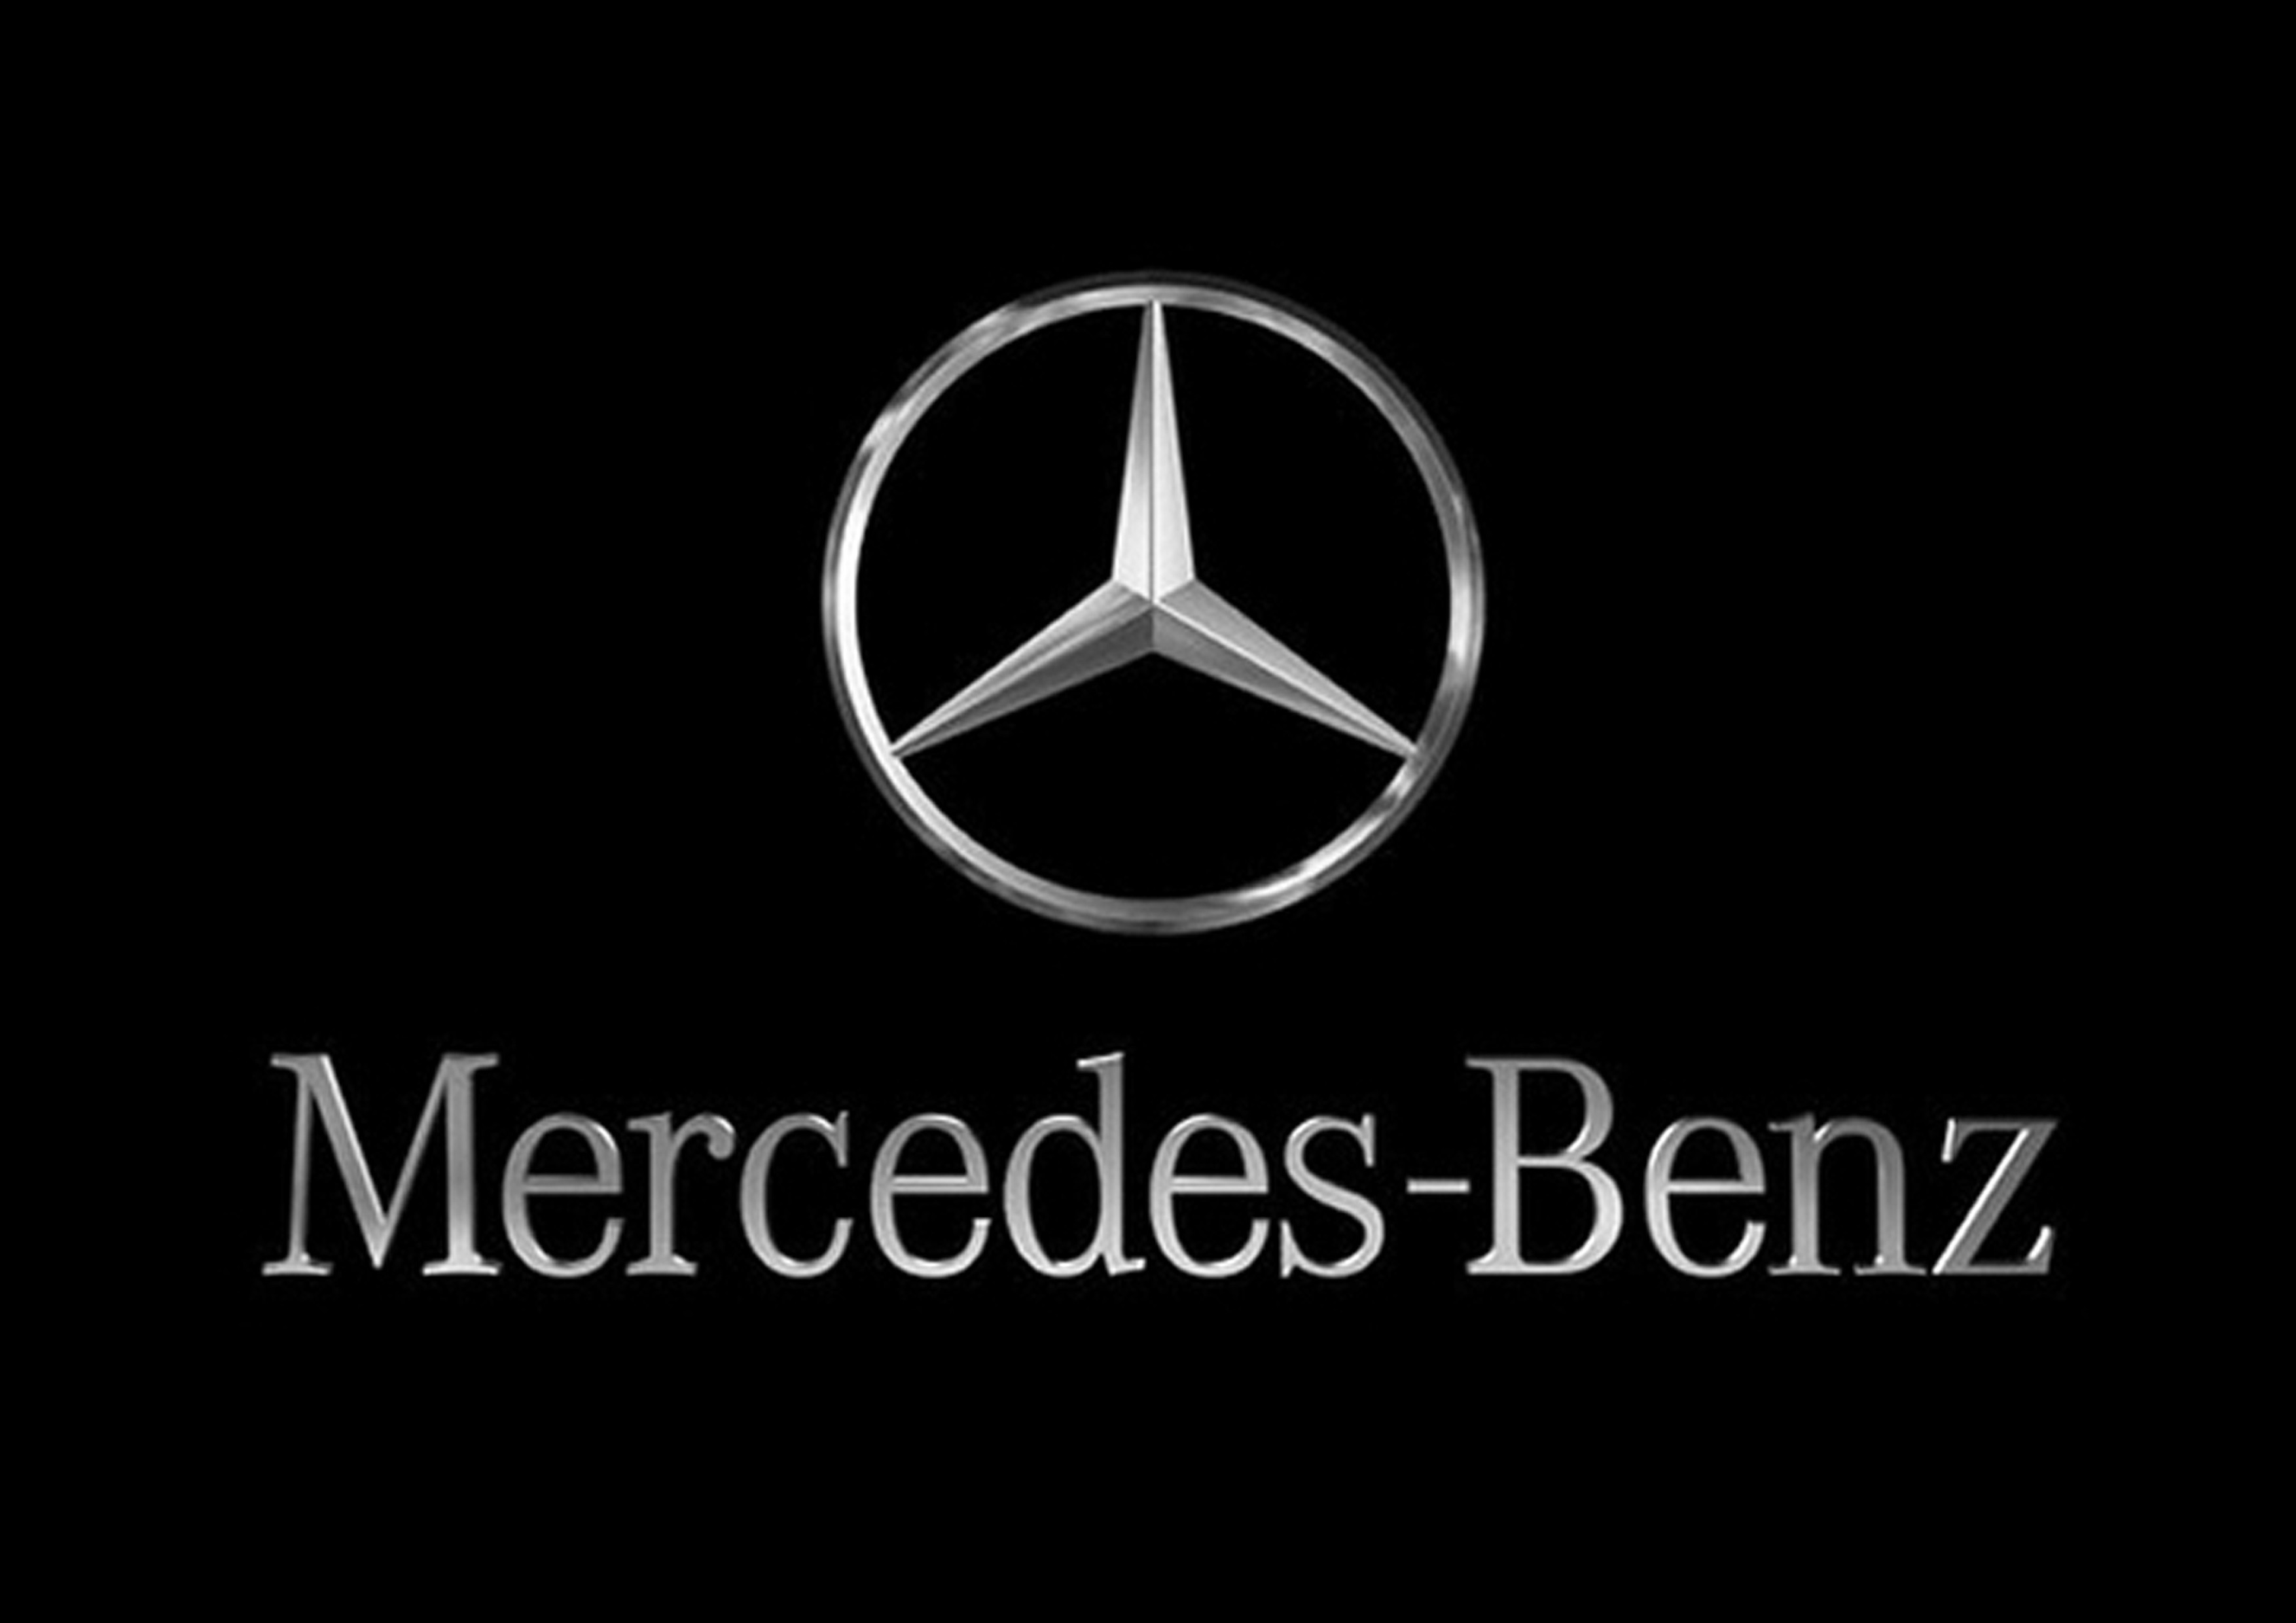 Mercedes Benz Logo Wallpapers Pictures Images 3508x2480